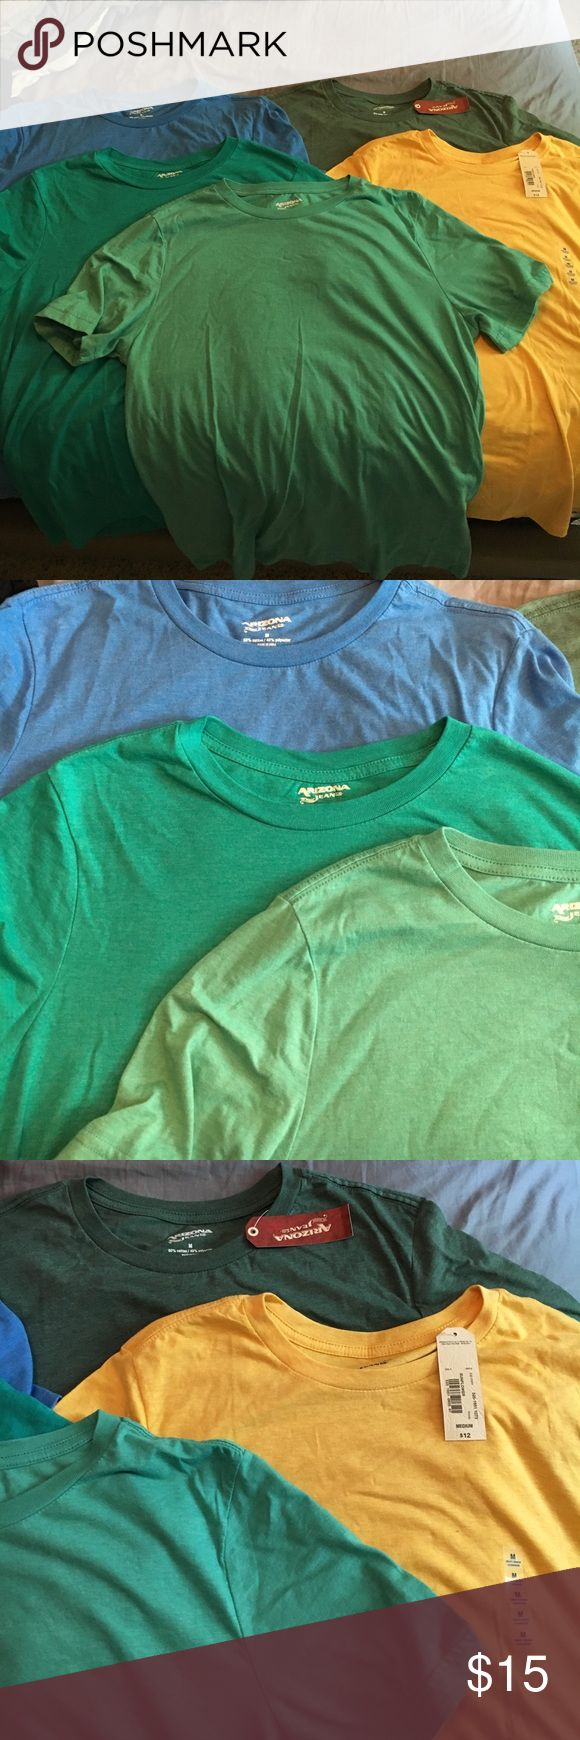 Lot of Men's Arizona Basic T's Five plain colored t-shirts. Heathered hunter green and yellow are NWT. Blue, teal, and aqua are only worn once or twice and in like new condition . All size medium. Arizona Jean Company Shirts Tees - Short Sleeve